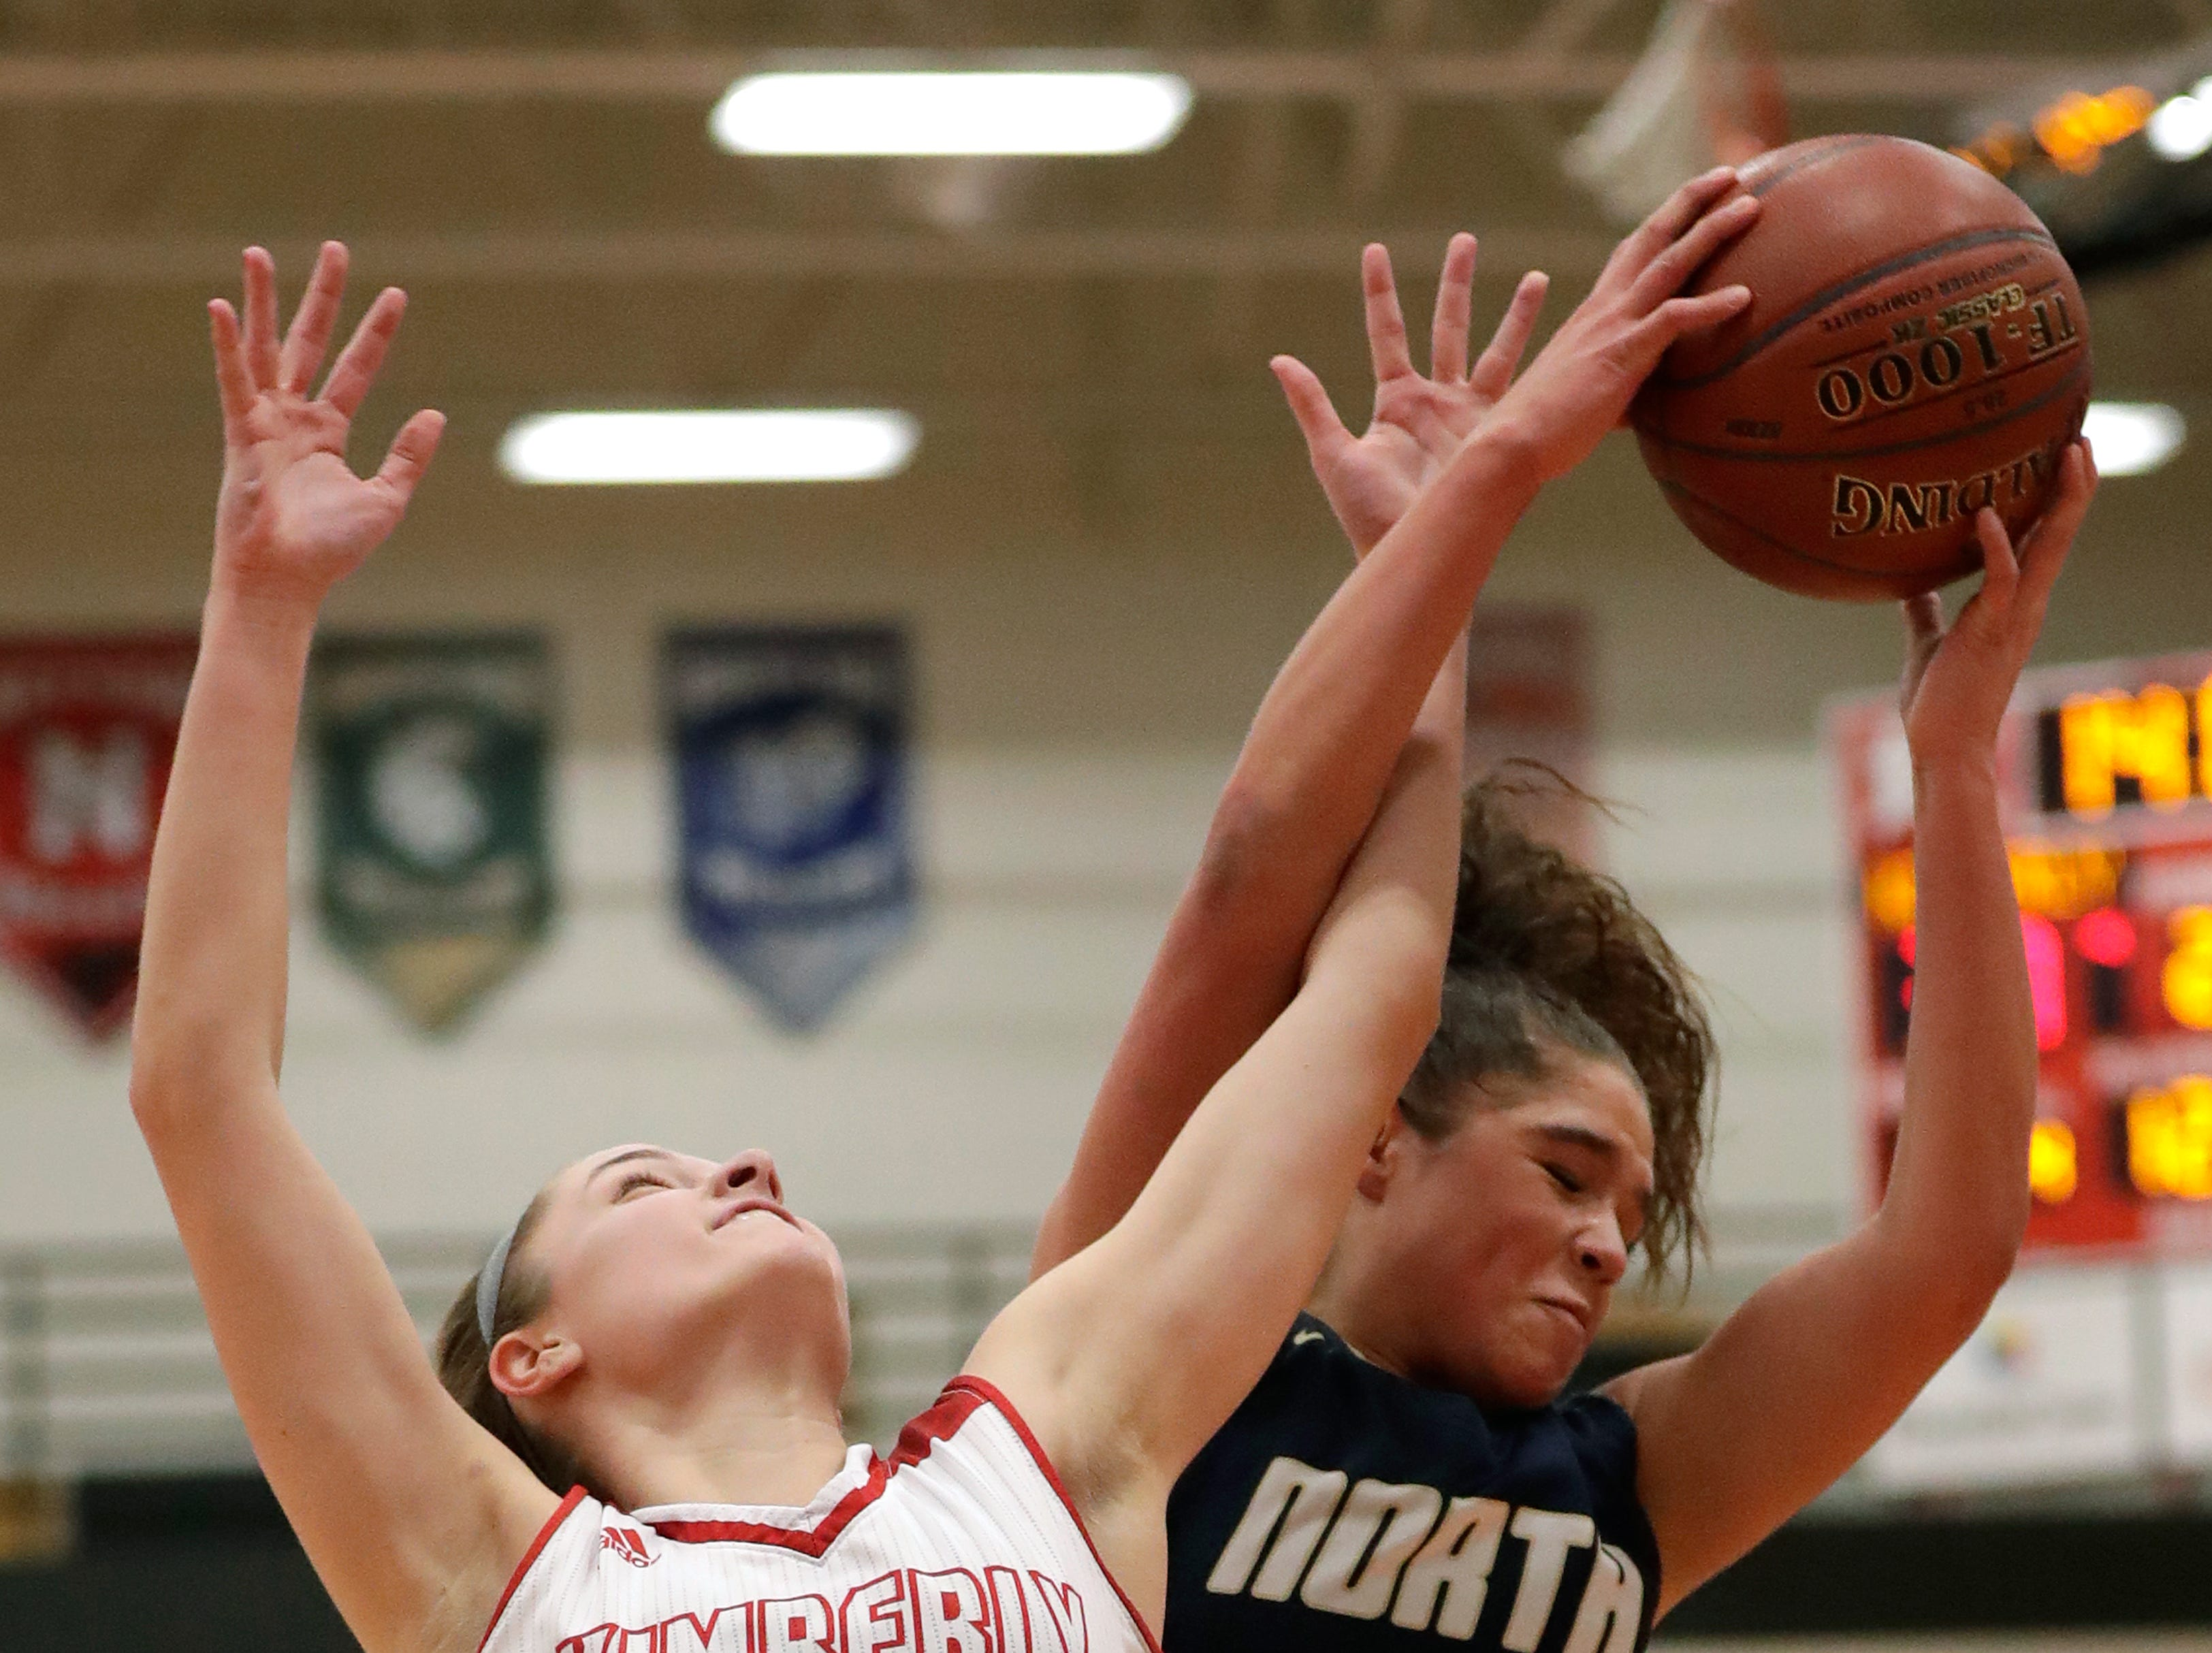 Kimberly High School's Taylor Hietpas (14) battles for a rebound against Appleton North High School's Niki Van Wyk (5)  during their girls basketball game Monday, February 11, 2019, in Kimberly, Wis. Dan Powers/USA TODAY NETWORK-Wisconsin